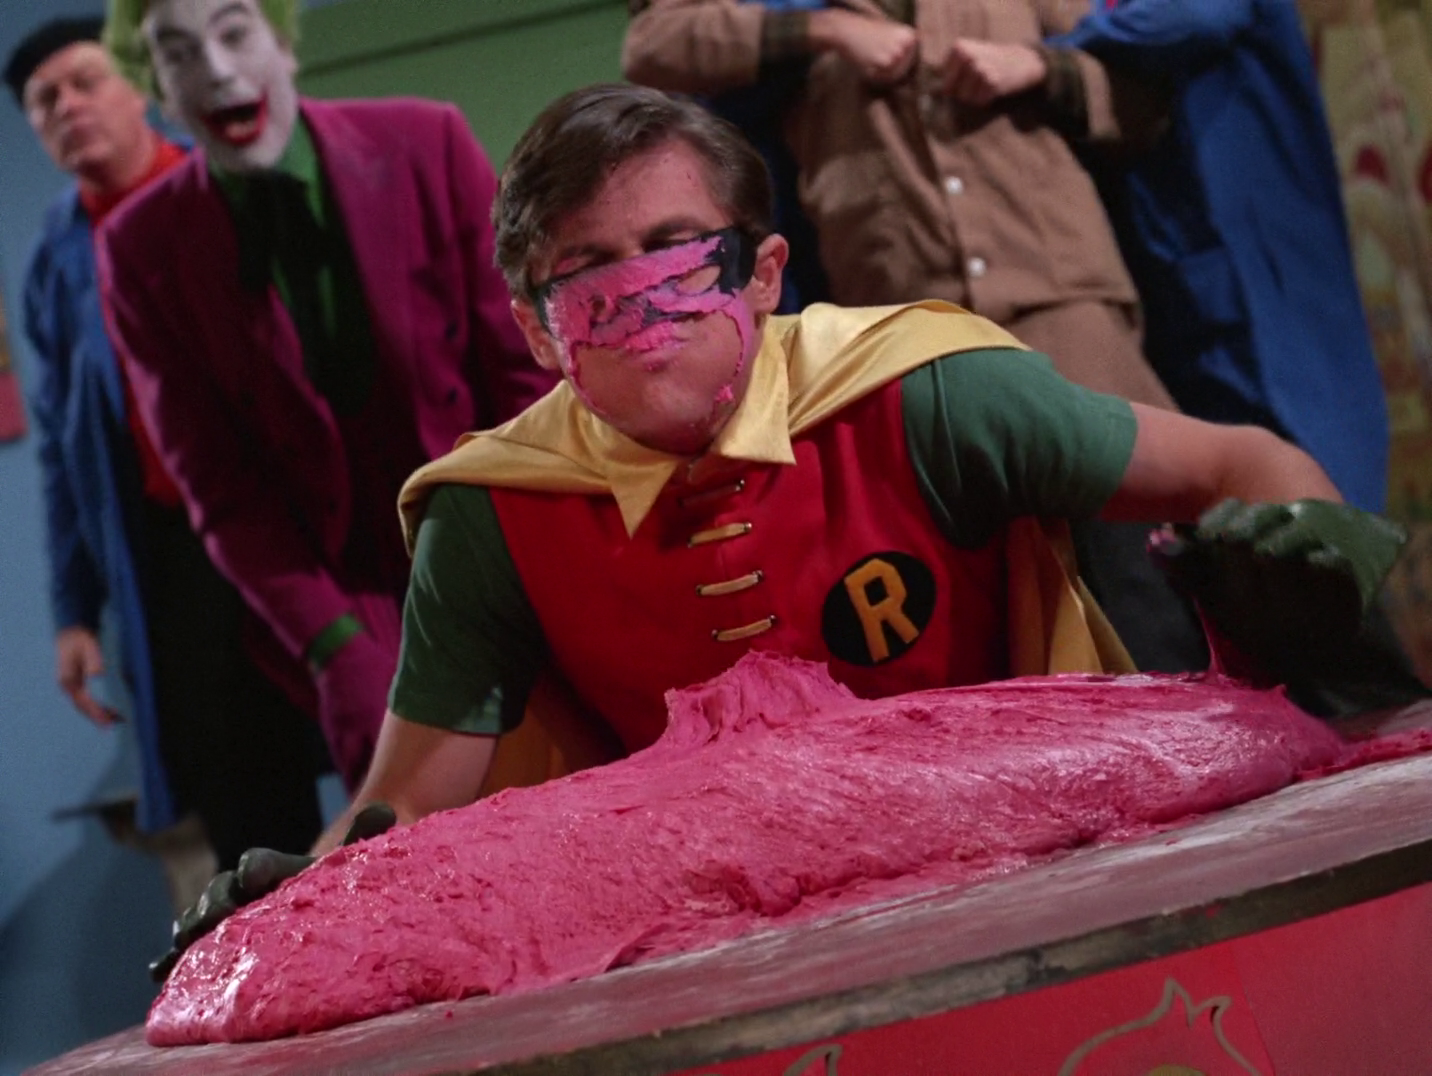 Robin's face after it landed in the Joker's glob of pink clay